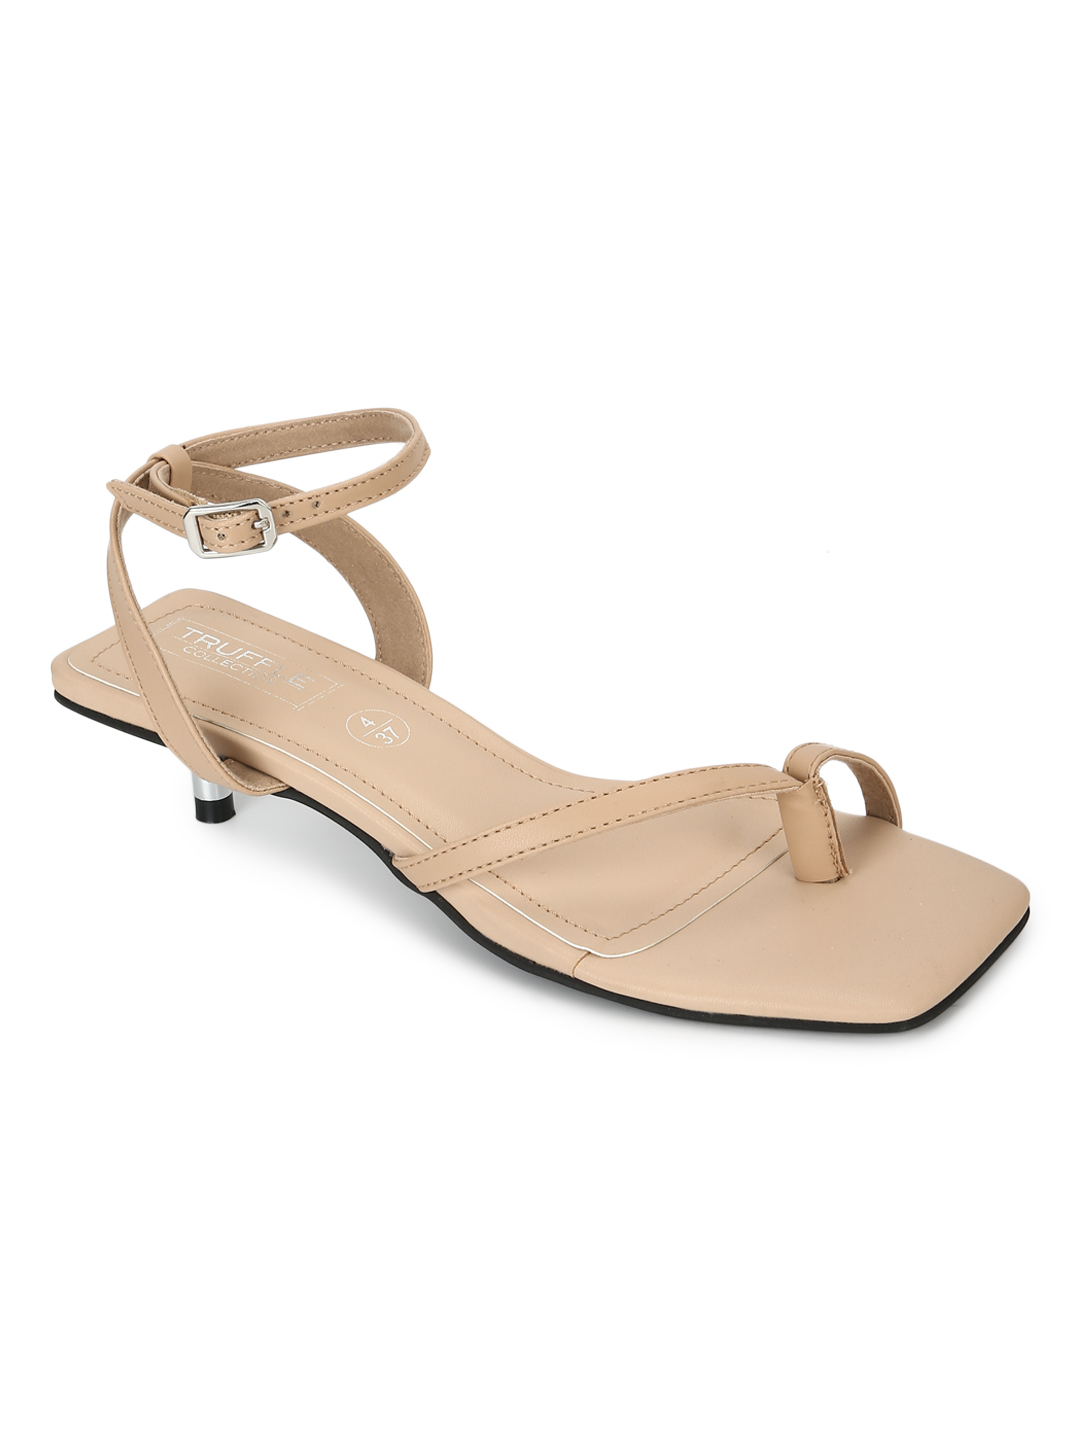 Truffle Collection | Truffle Collection Nude PU Strappy Kitten Heels